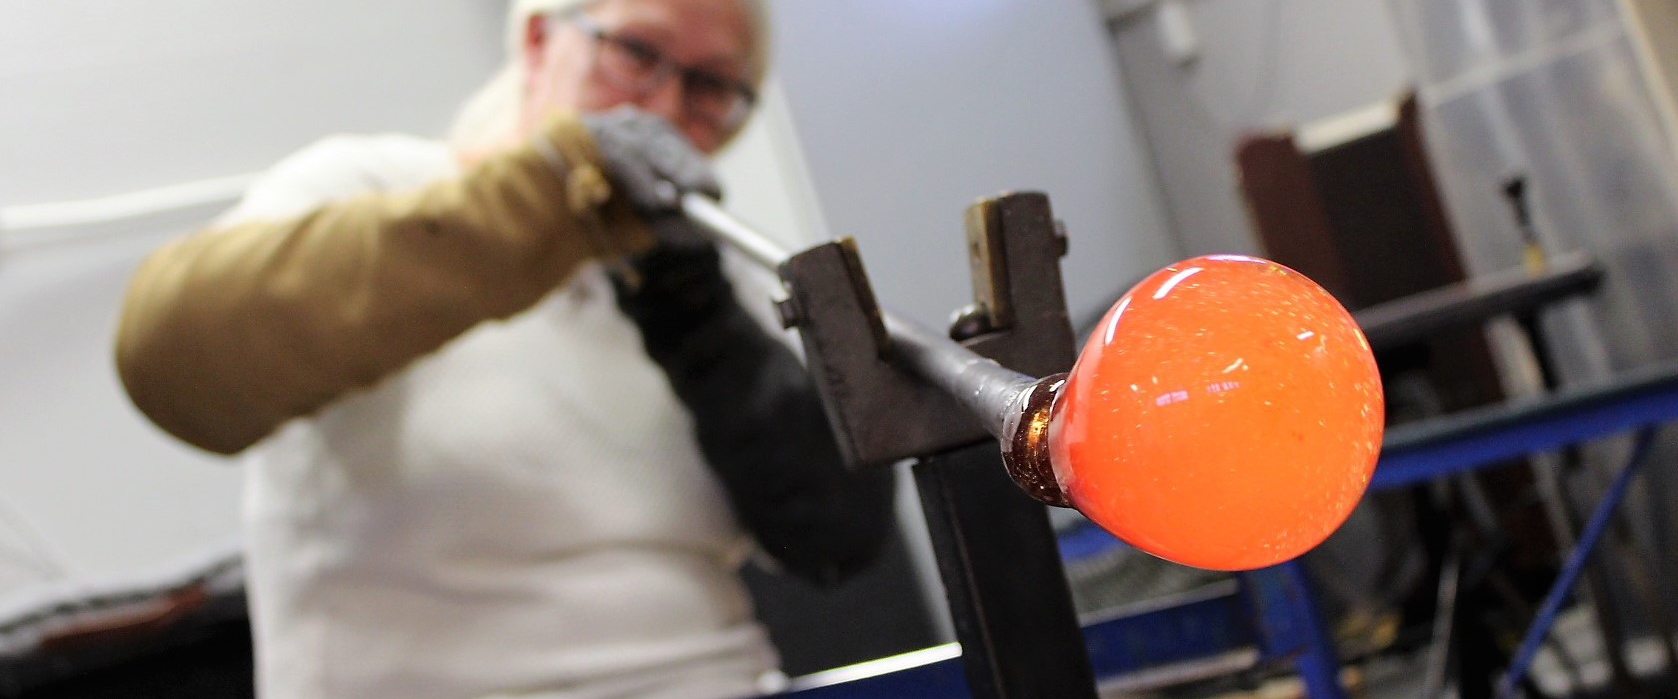 Glass-blowing for window decorations.